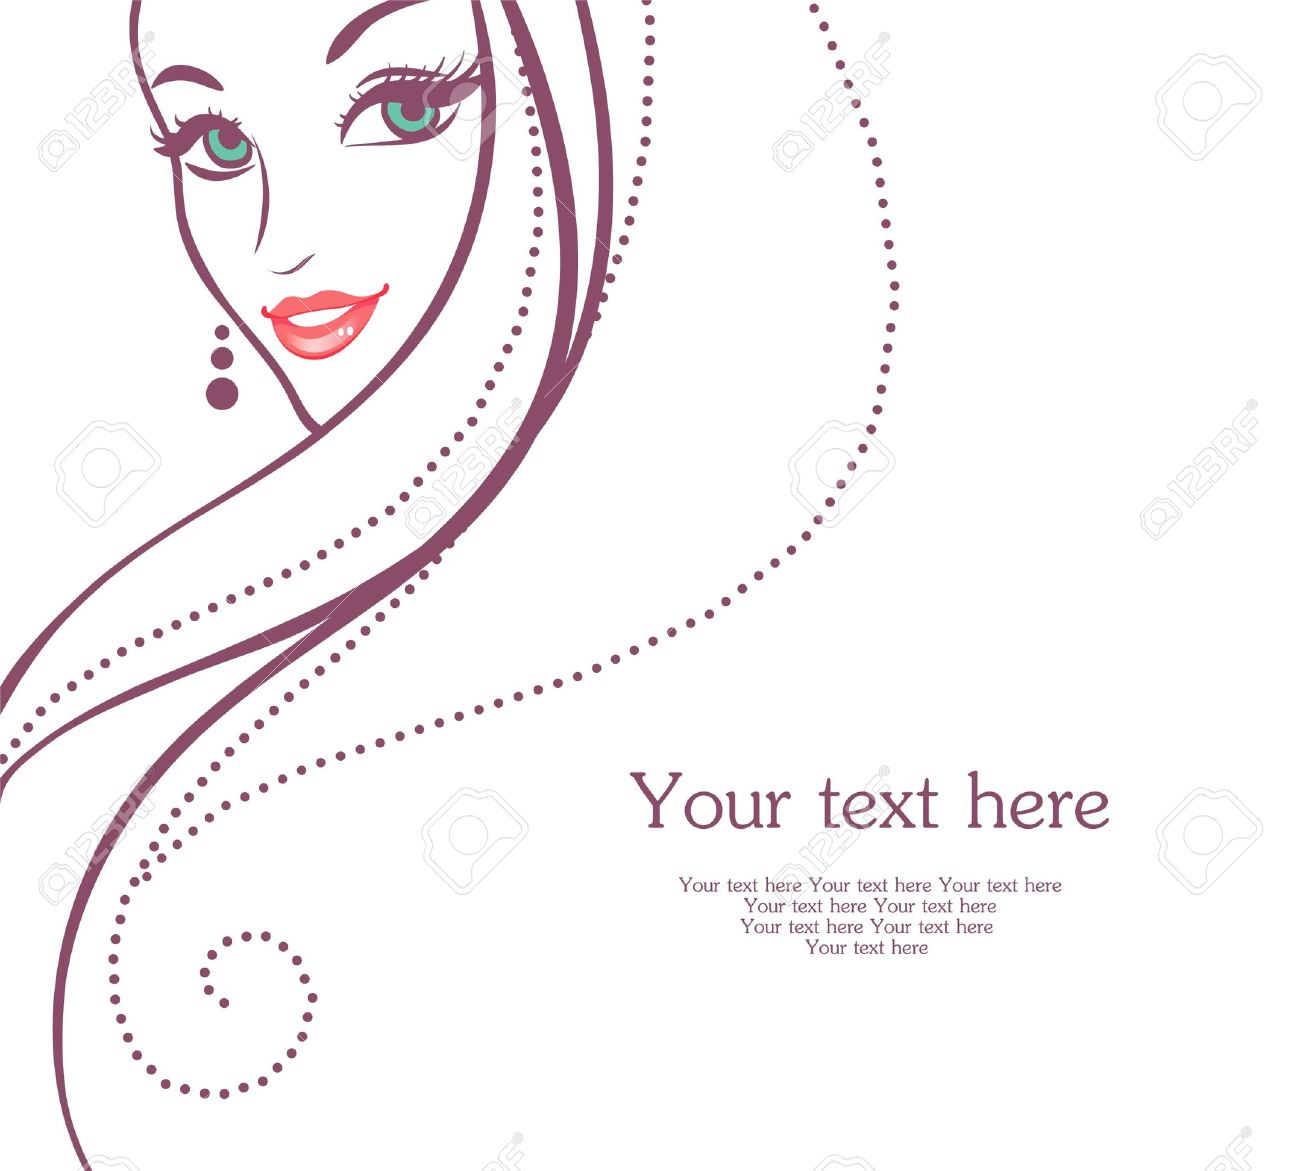 Vector illustration of Beauty woman pic Stock Vector - 15174945